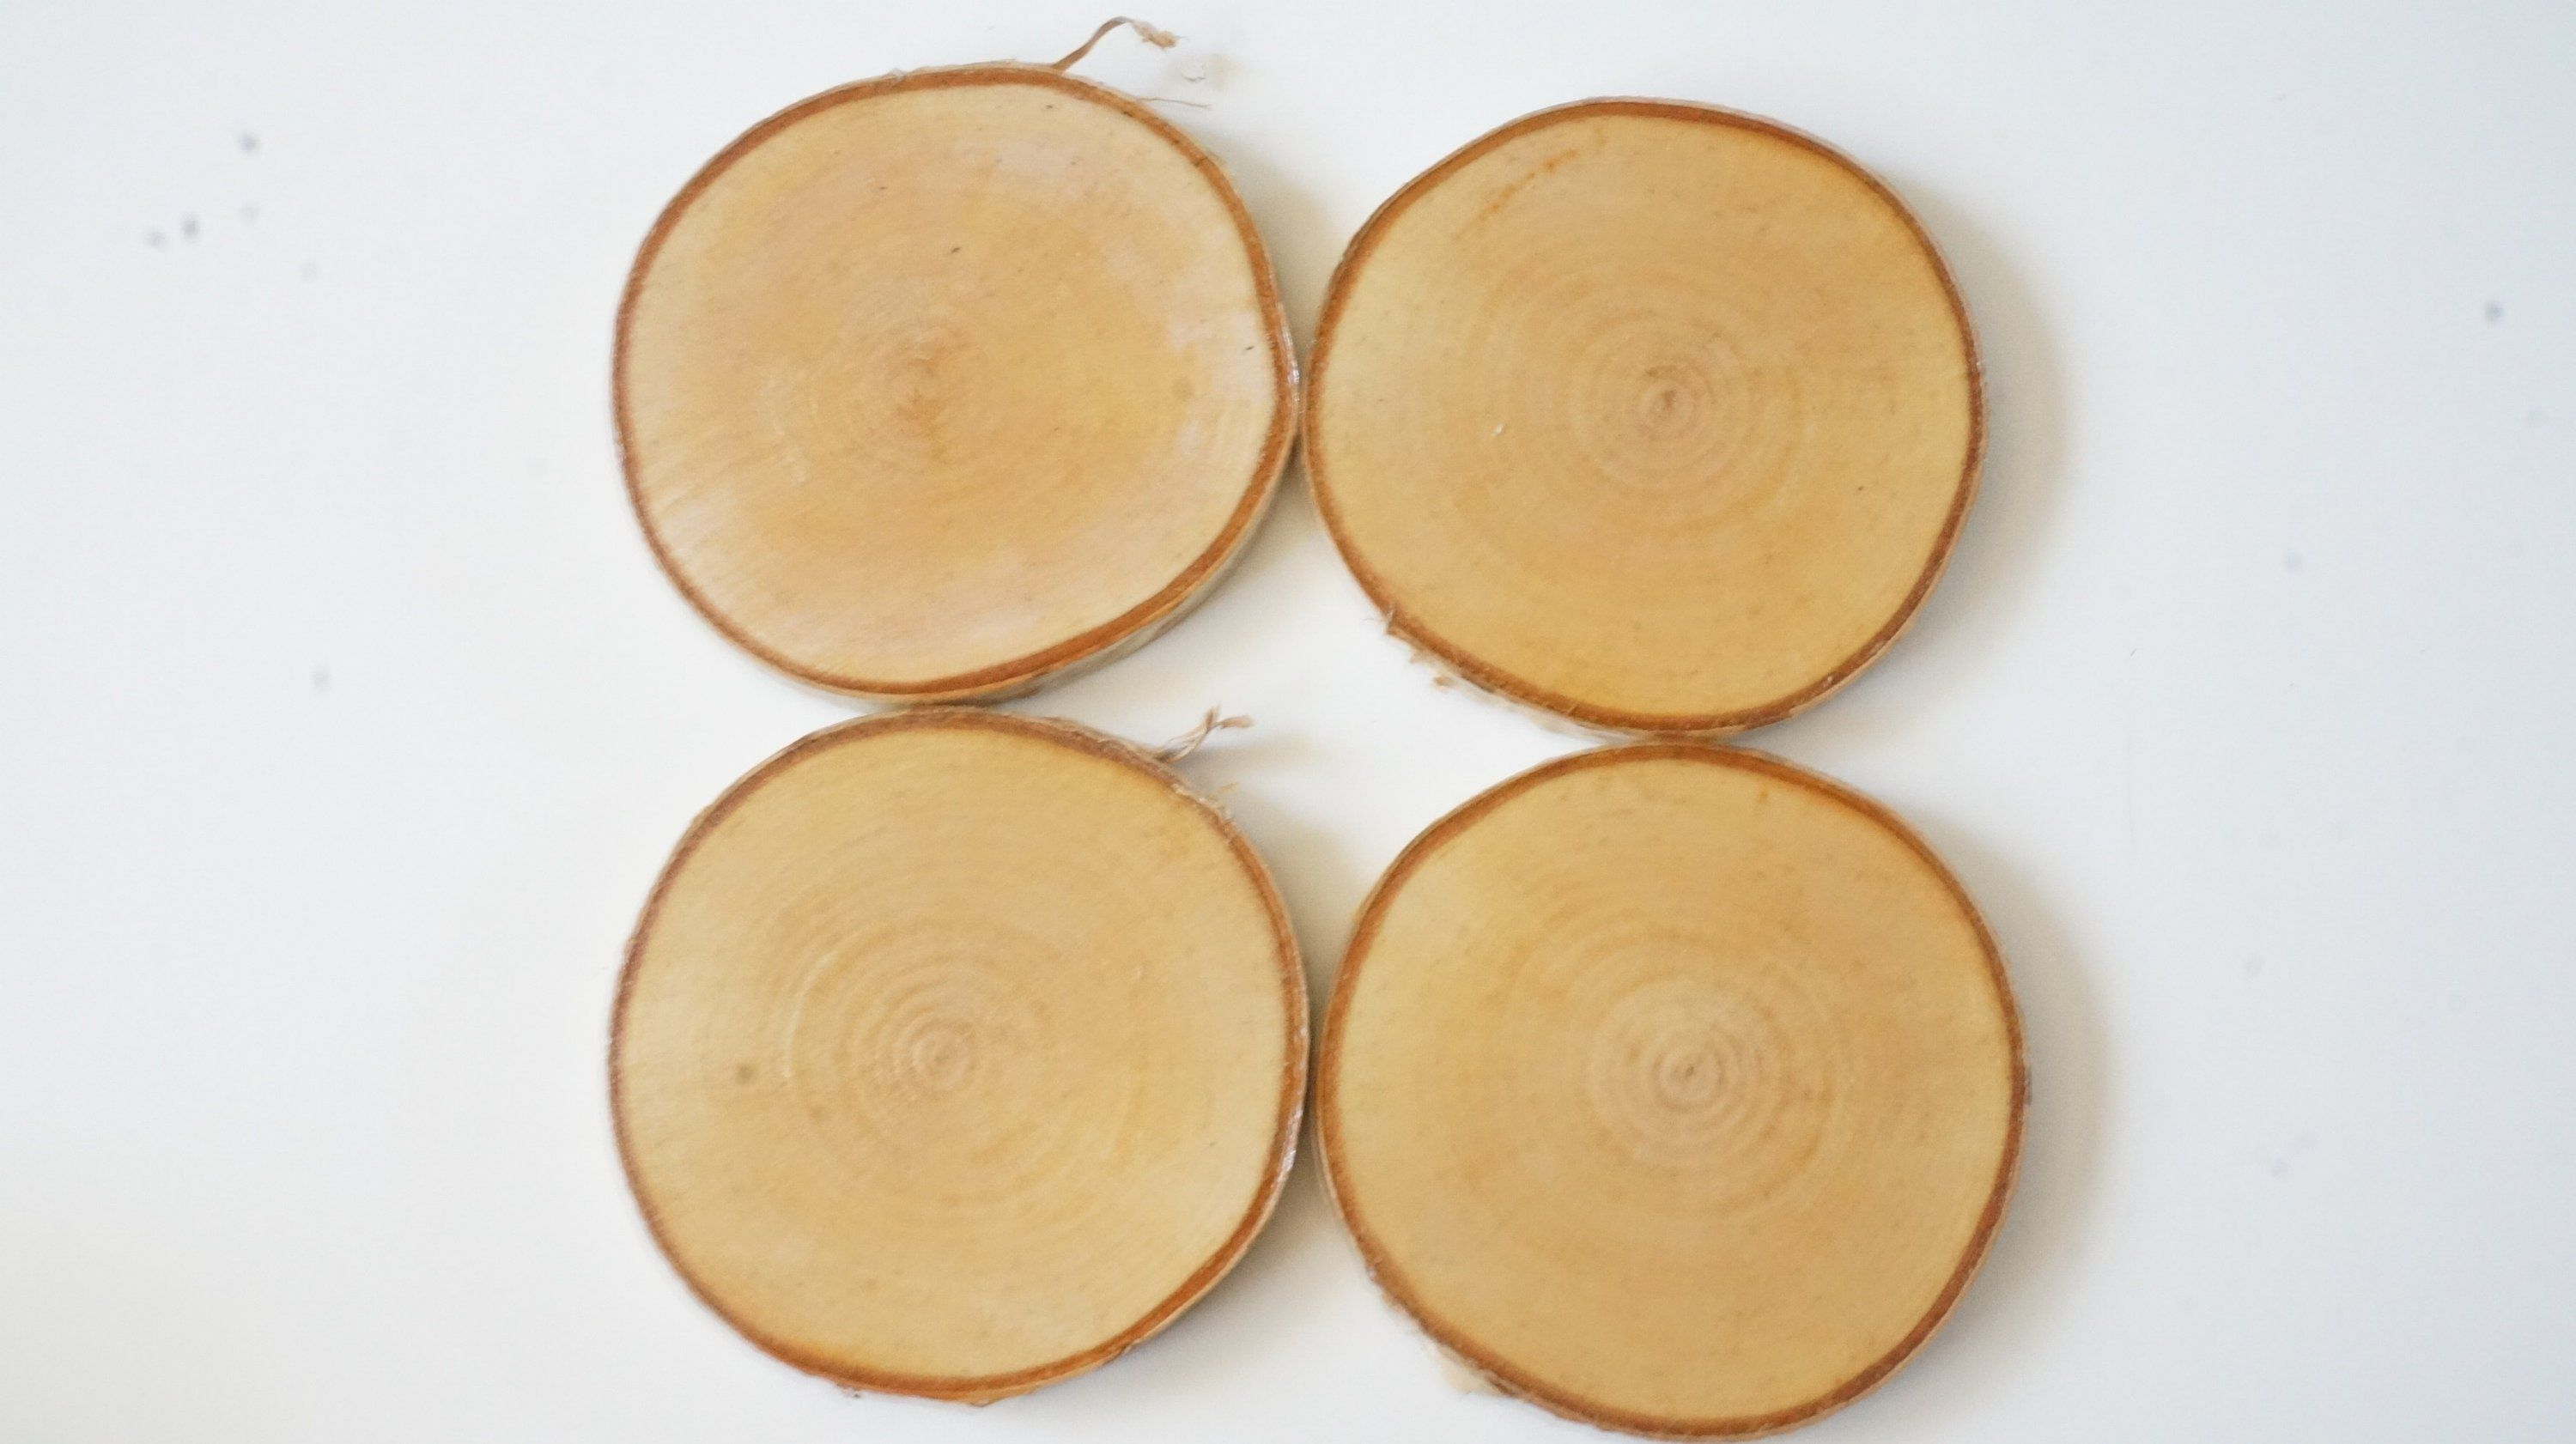 Birch And Cherry Wood Slice Drink Coasters Mixed Set Of 6 Coffee Lover Gift Farmhouse Decor 5th Anniversary Gift Coffee Lover Gifts Wood Slices Valentines Gifts For Him